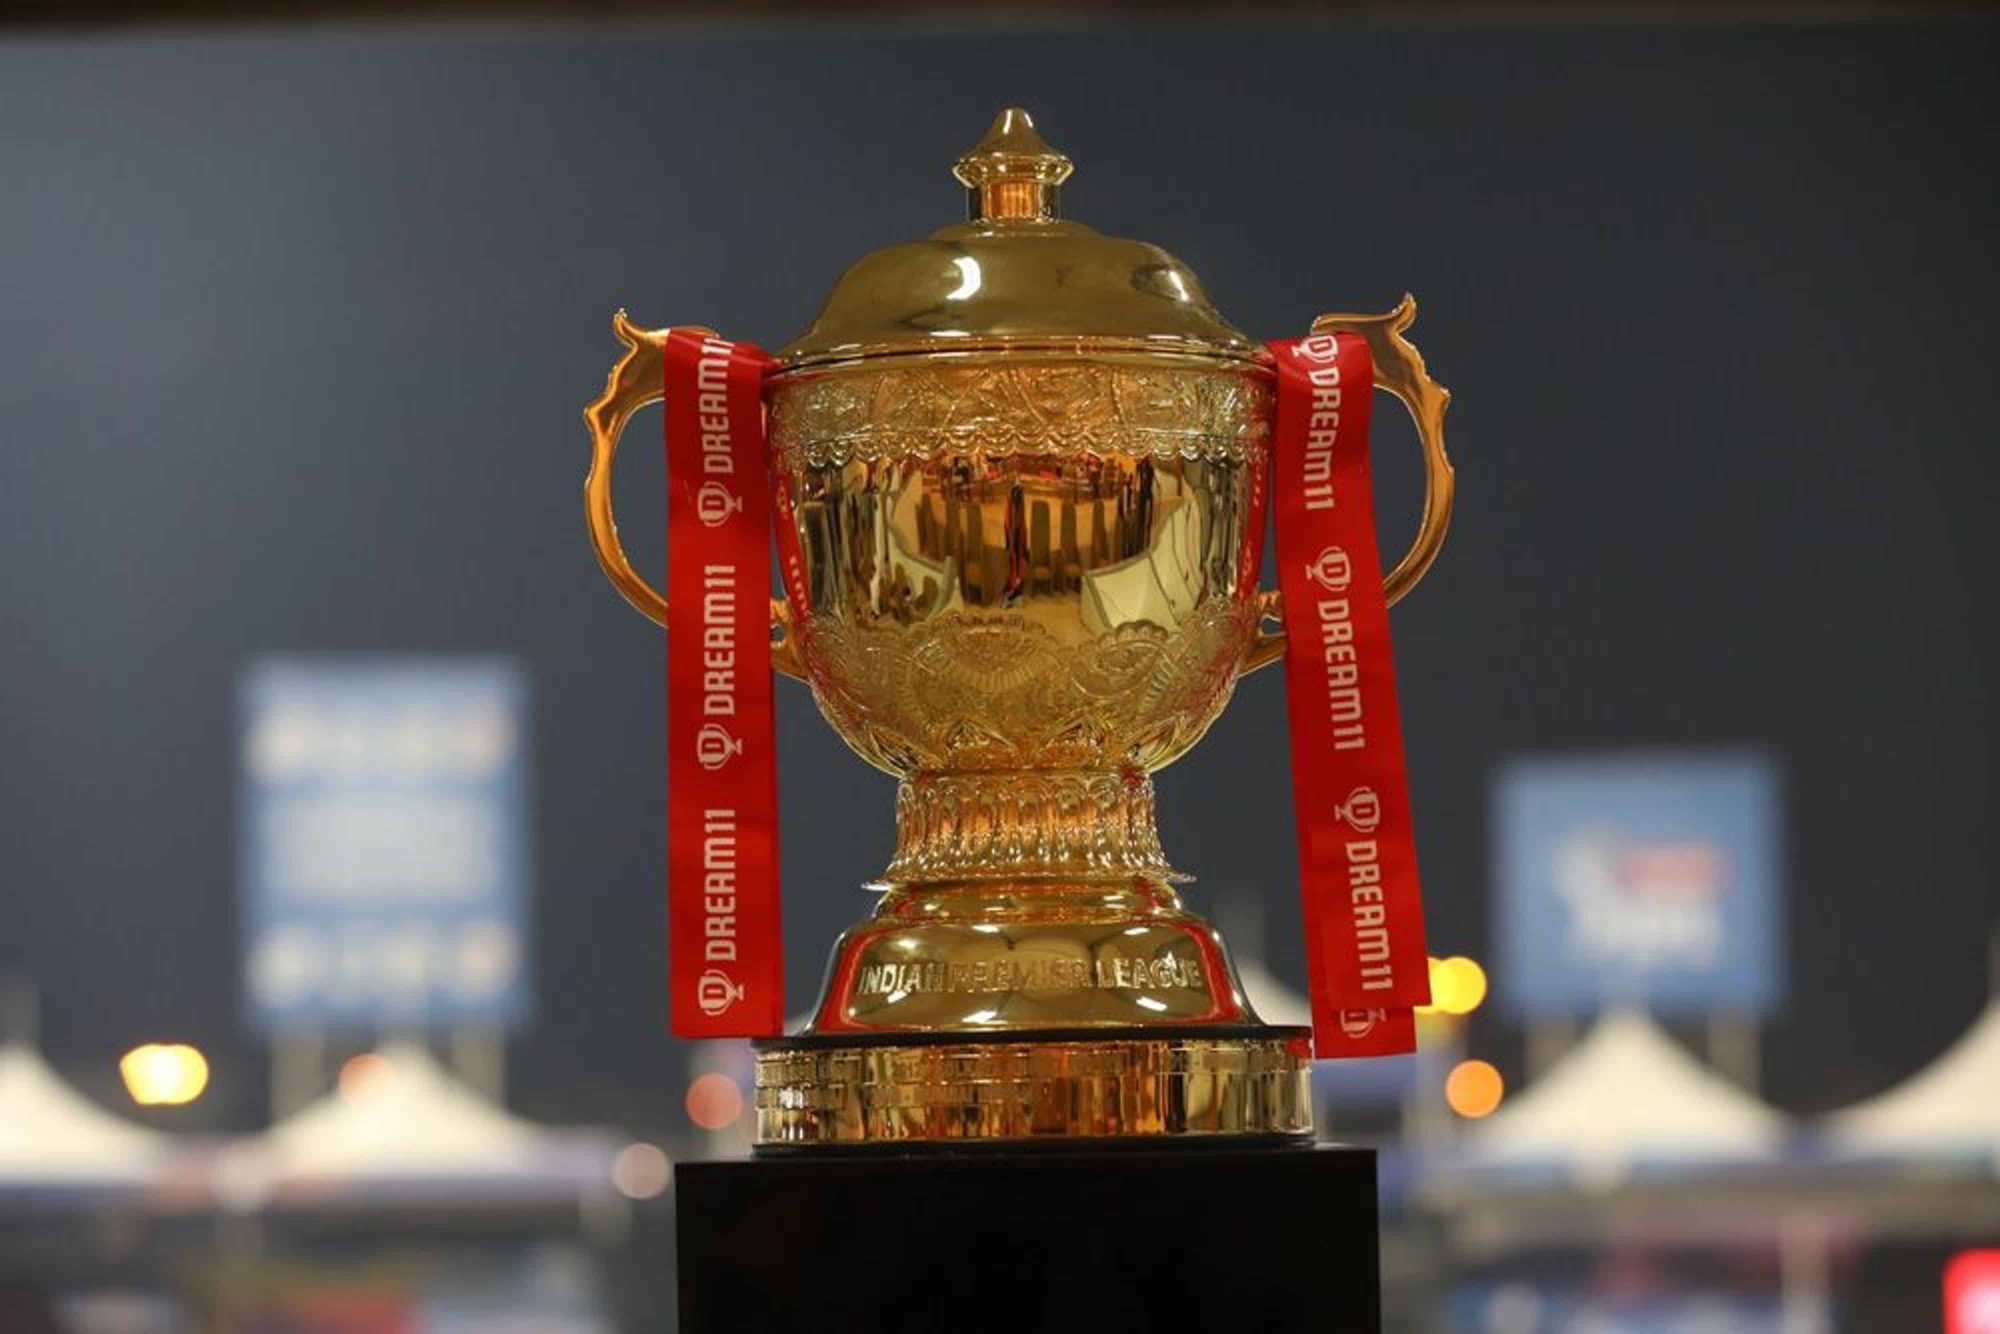 BCCI Approves 10-Team IPL From 2022 Edition at its Annual General Meeting